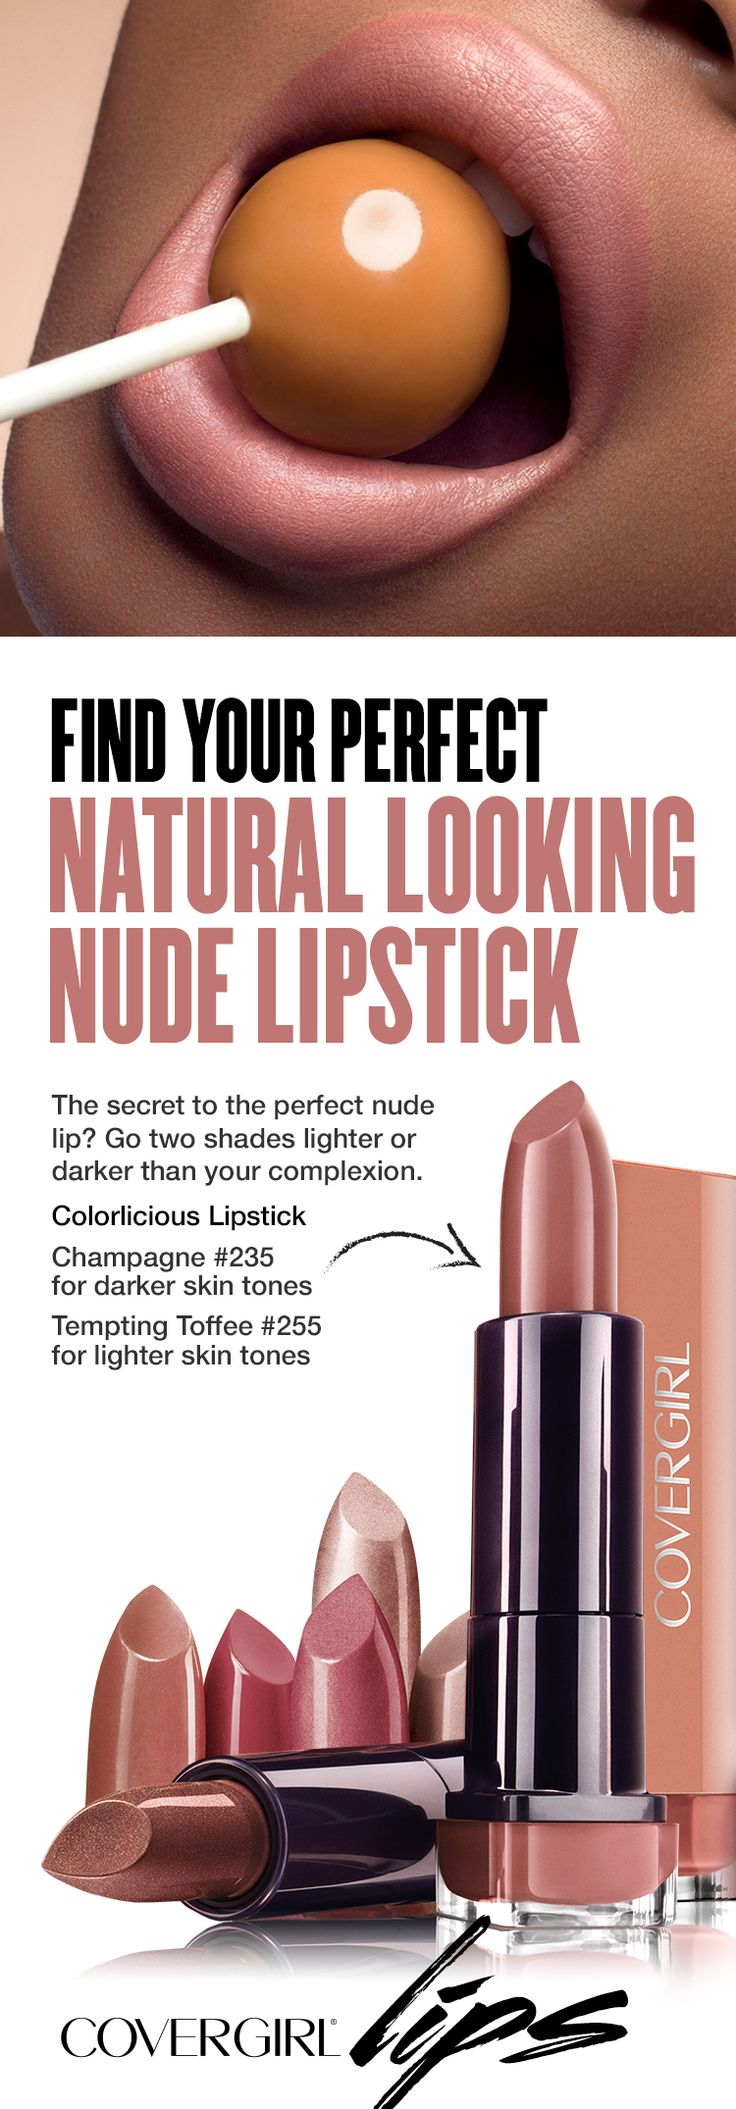 The secret to the perfect nude lip? Go two shades lighter or darker than your complexion. Nudes look great when paired with a smokey eye – perfect for any special occasion.